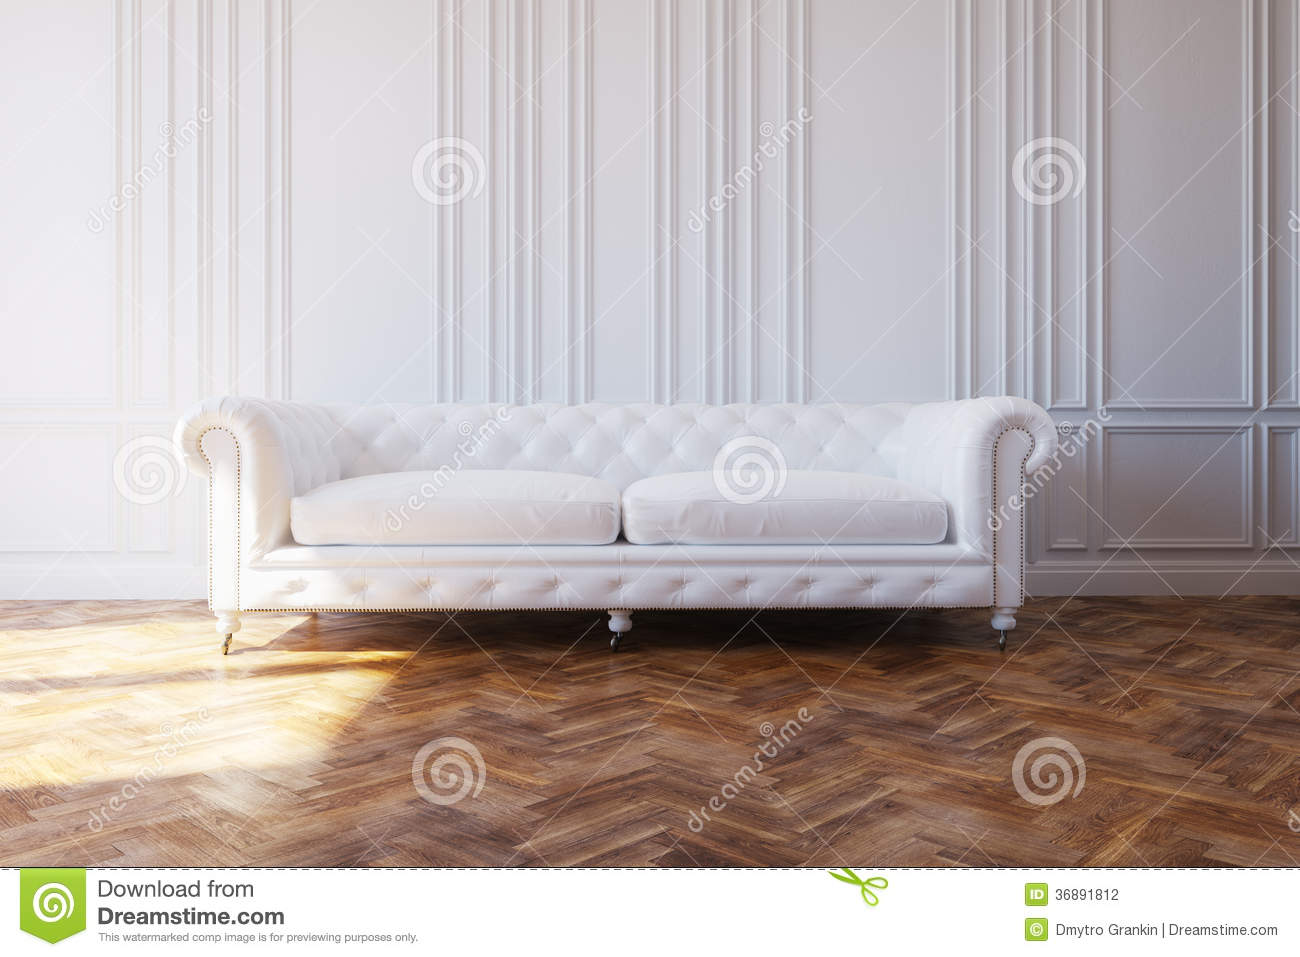 White Luxury Leather Sofa In Classic Design Interior Stock graphy Image